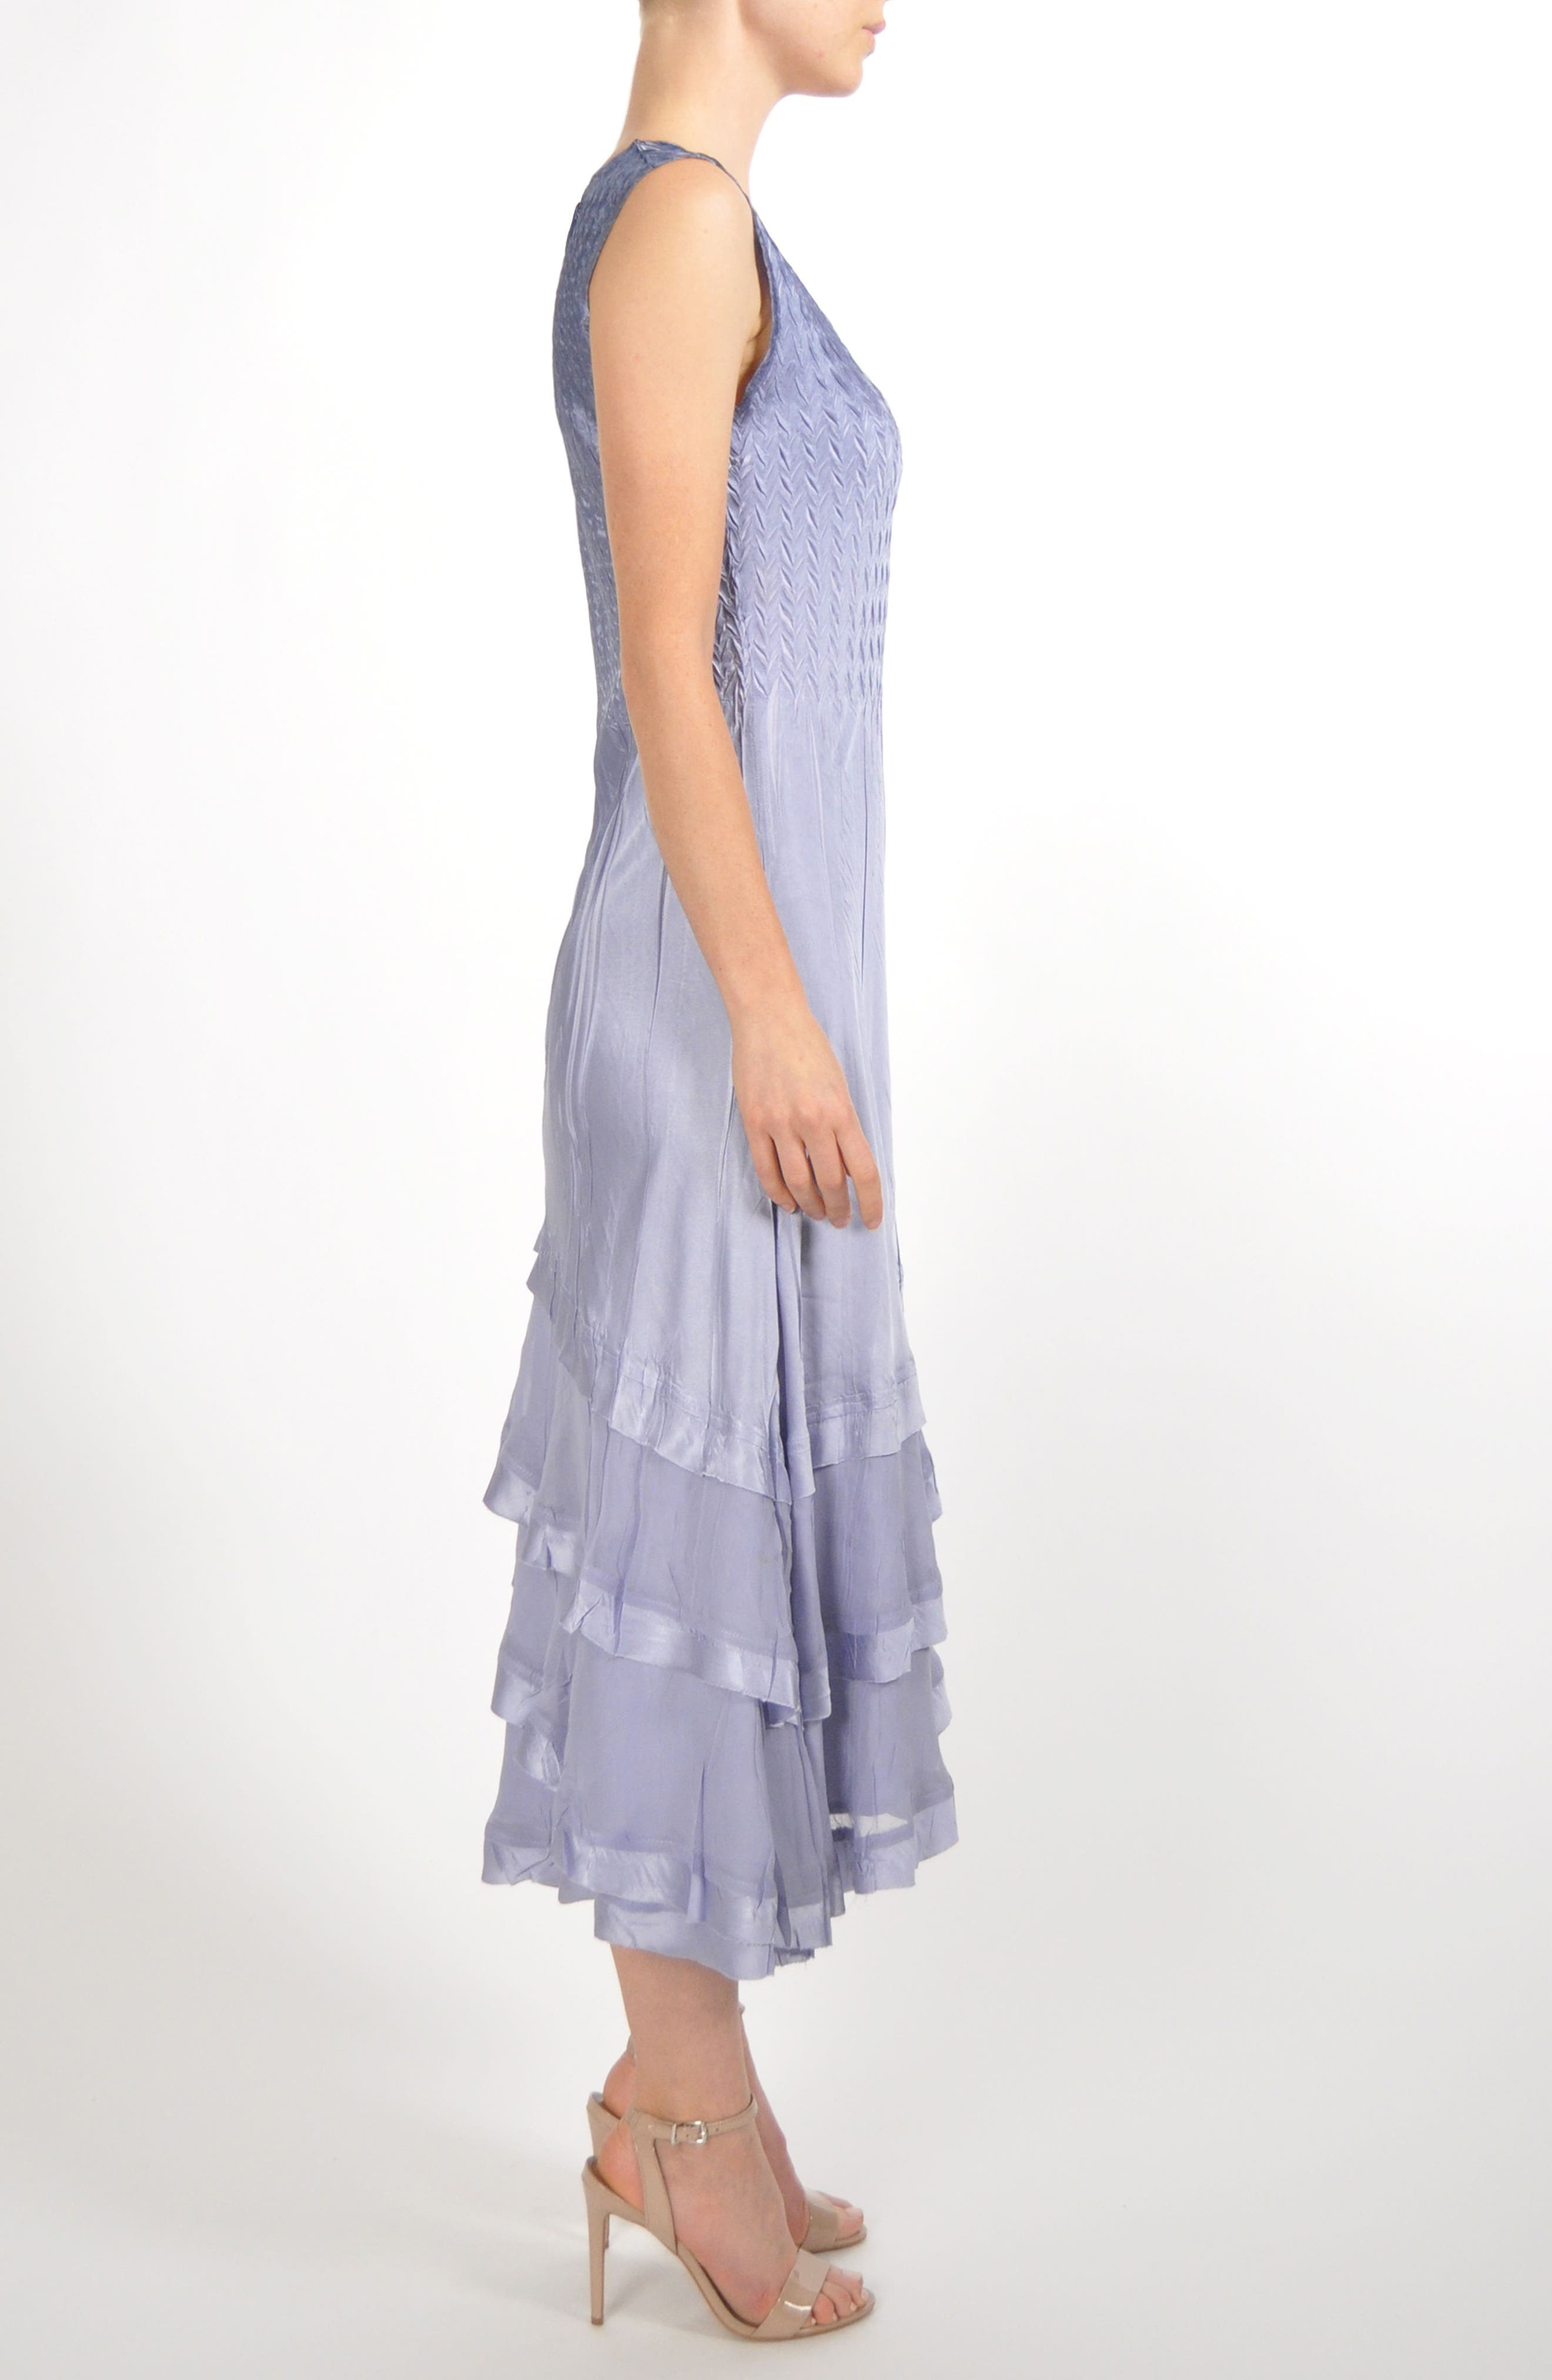 Charmeuse & Chiffon Tiered Hem Dress with Jacket,                             Alternate thumbnail 5, color,                             Lavender Grey Blue Ombre